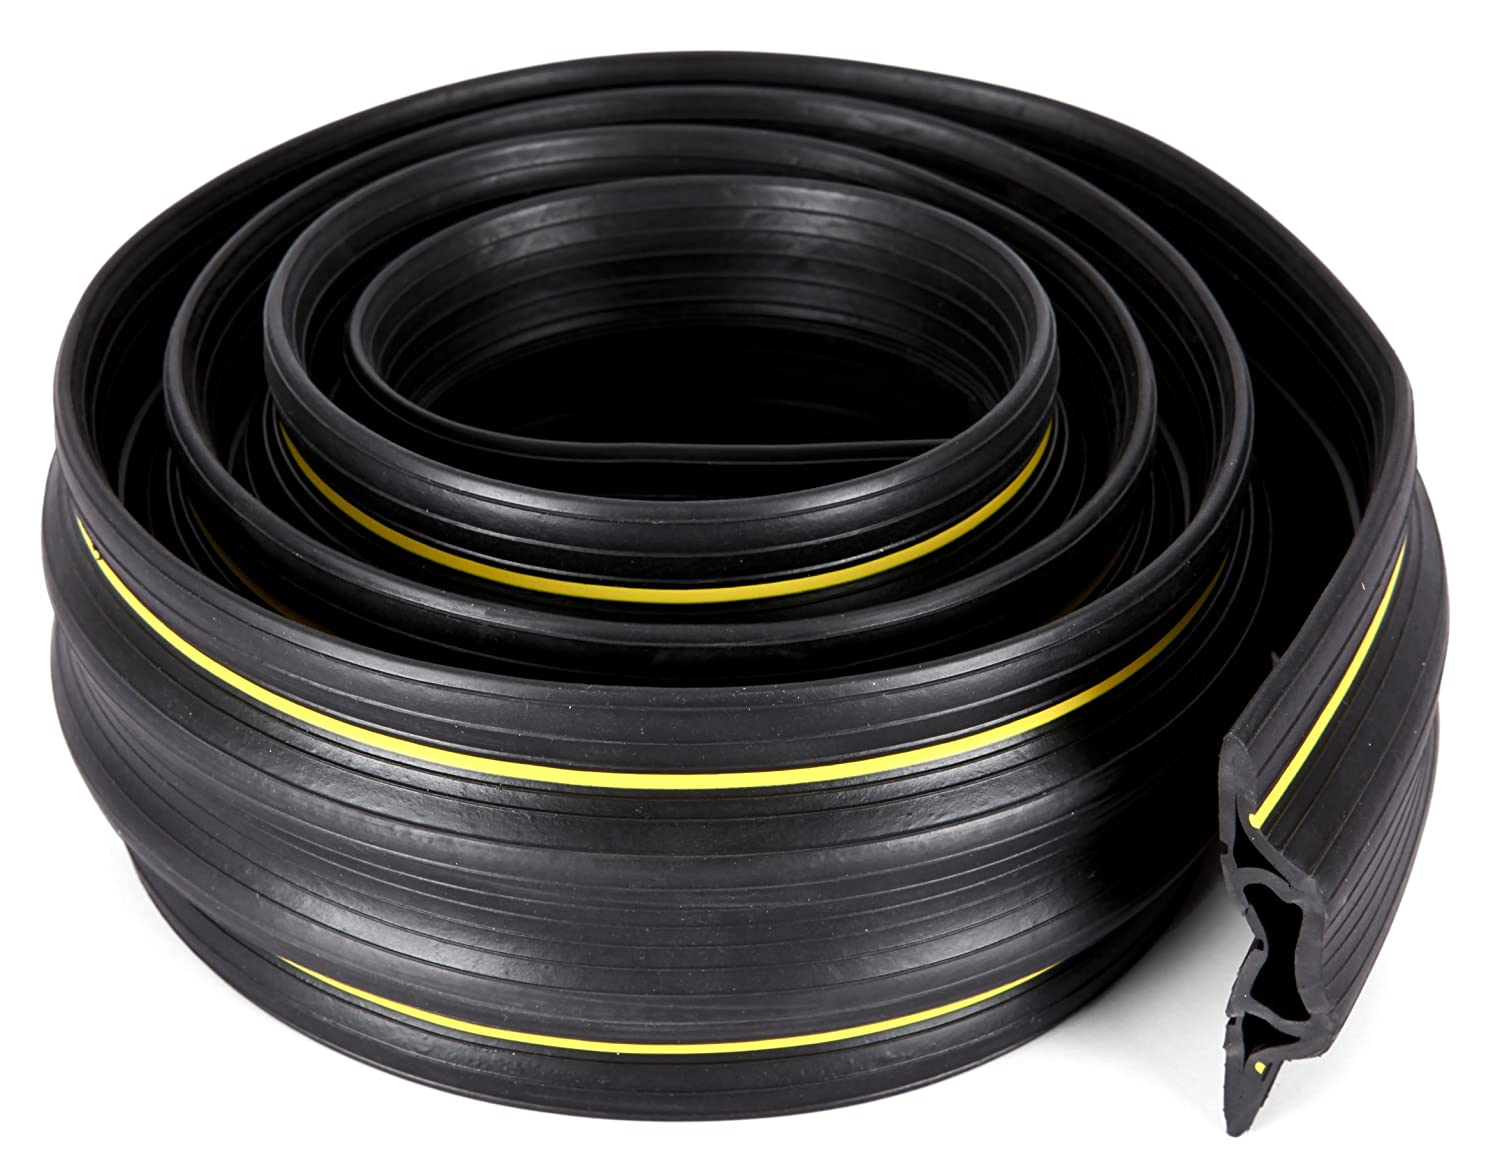 65 Feet Heavy Duty Cable Protector Cord Cover 3 Wiring Specialist Inc Channels Durable Black Pvc Is Flexible Odor Free Easy To Unroll And Open Conceal